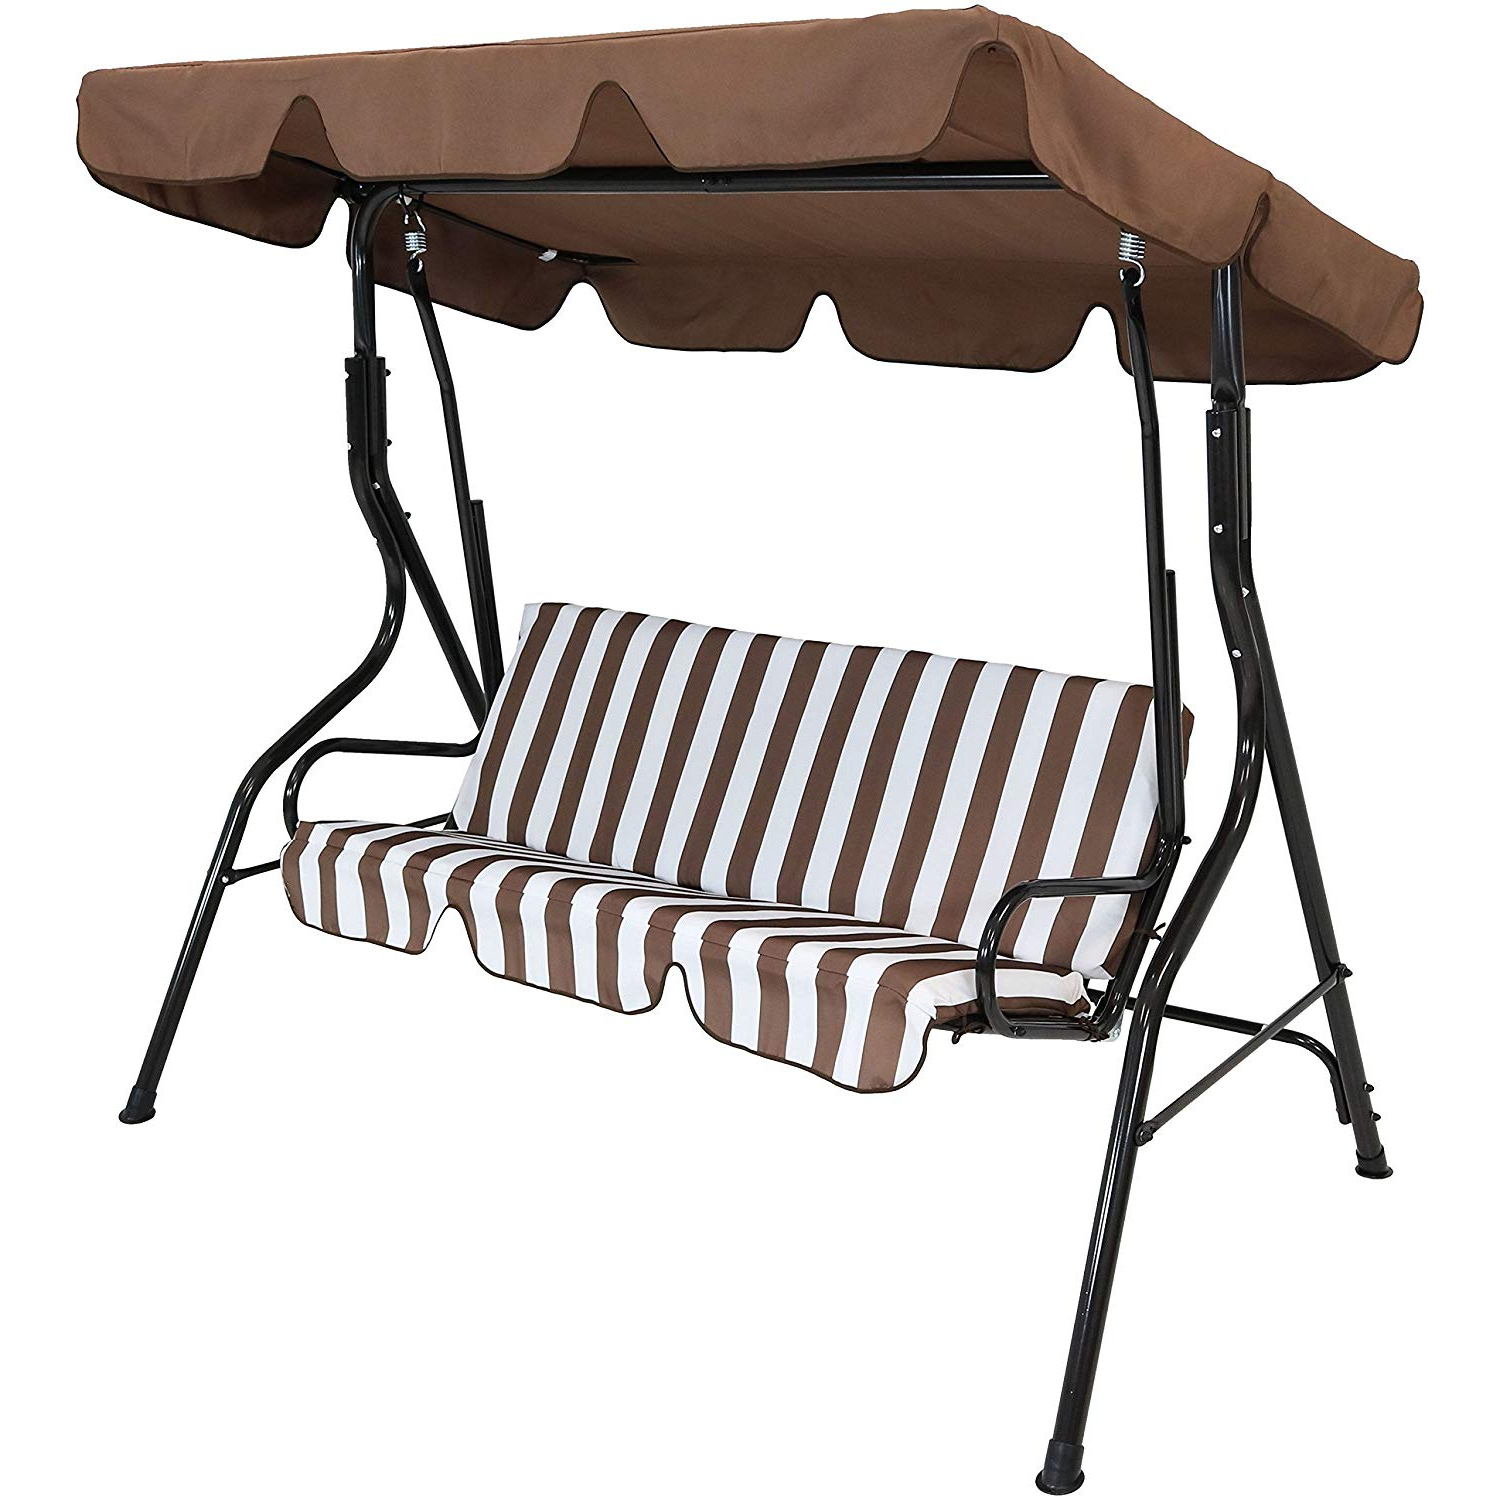 2 Person Outdoor Convertible Canopy Swing Gliders With Removable Cushions Beige In Recent Sunnydaze Outdoor Porch Swing With Adjustable Canopy And Durable Steel Frame, 2 Person Patio Seater, Brown Striped Seat Cushions (View 19 of 30)